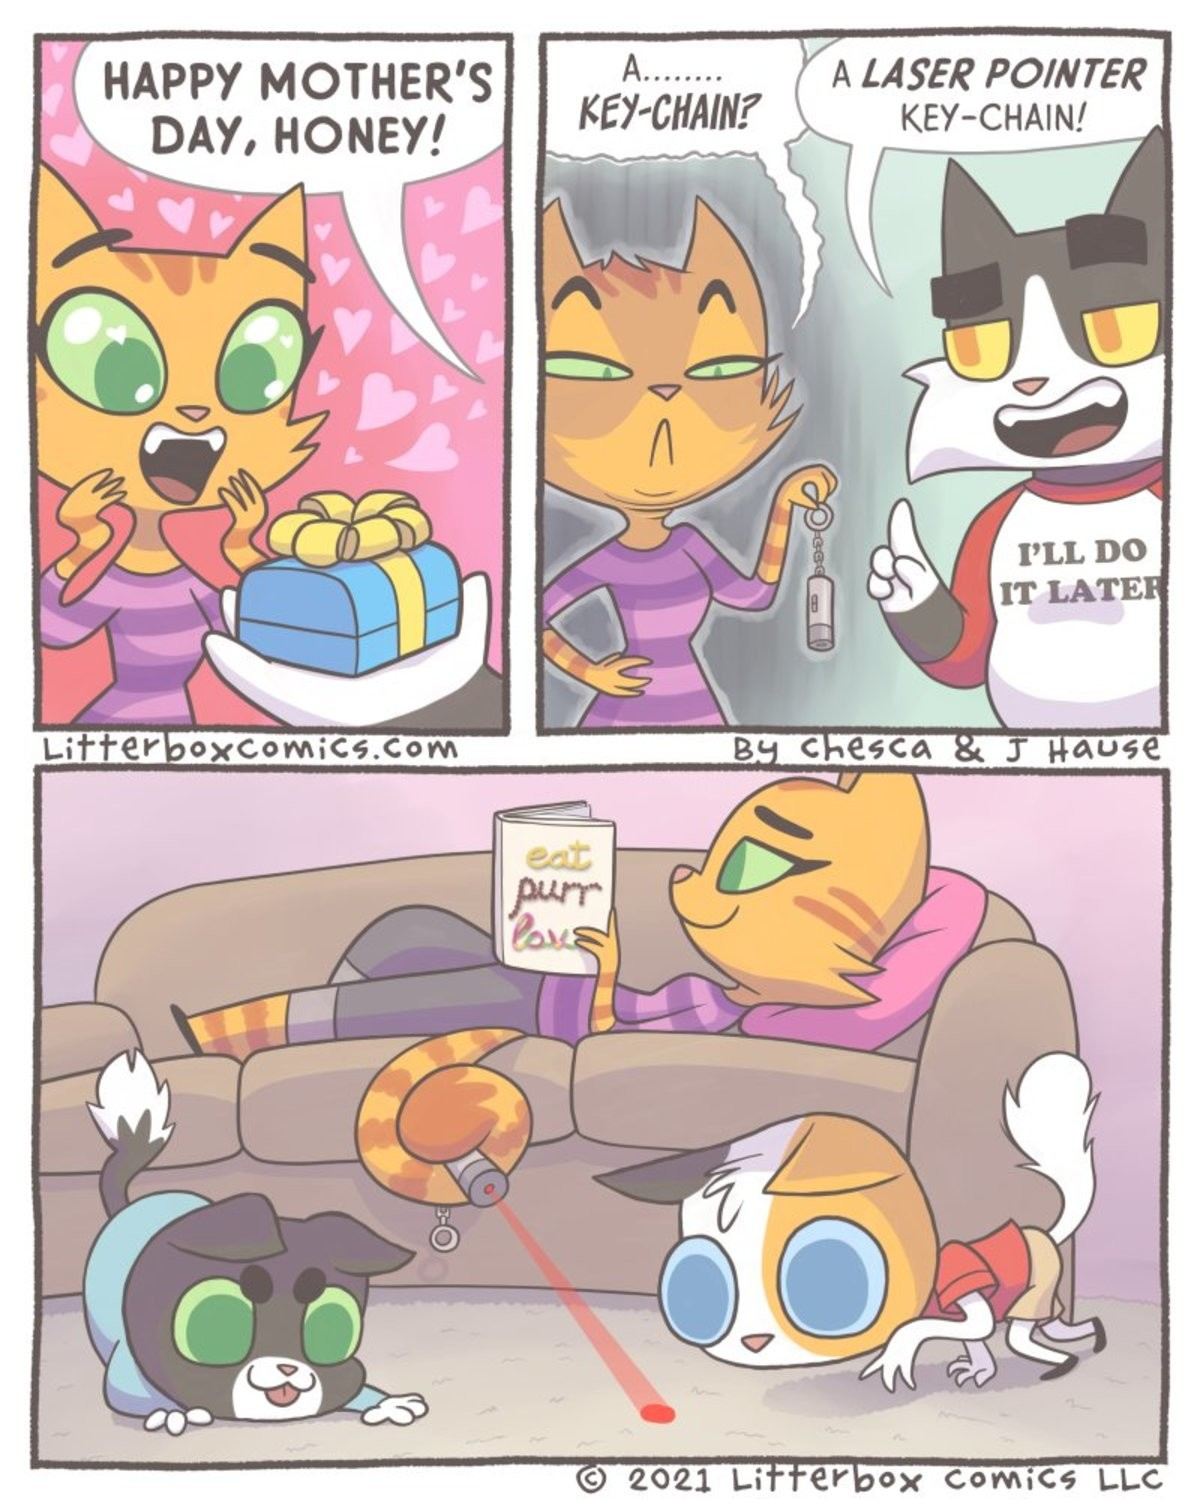 Cat mom. .. The perfect furry webcomic. Makes perfect use of both halves of the furry aspect without trivializing it or turning it into fap material.